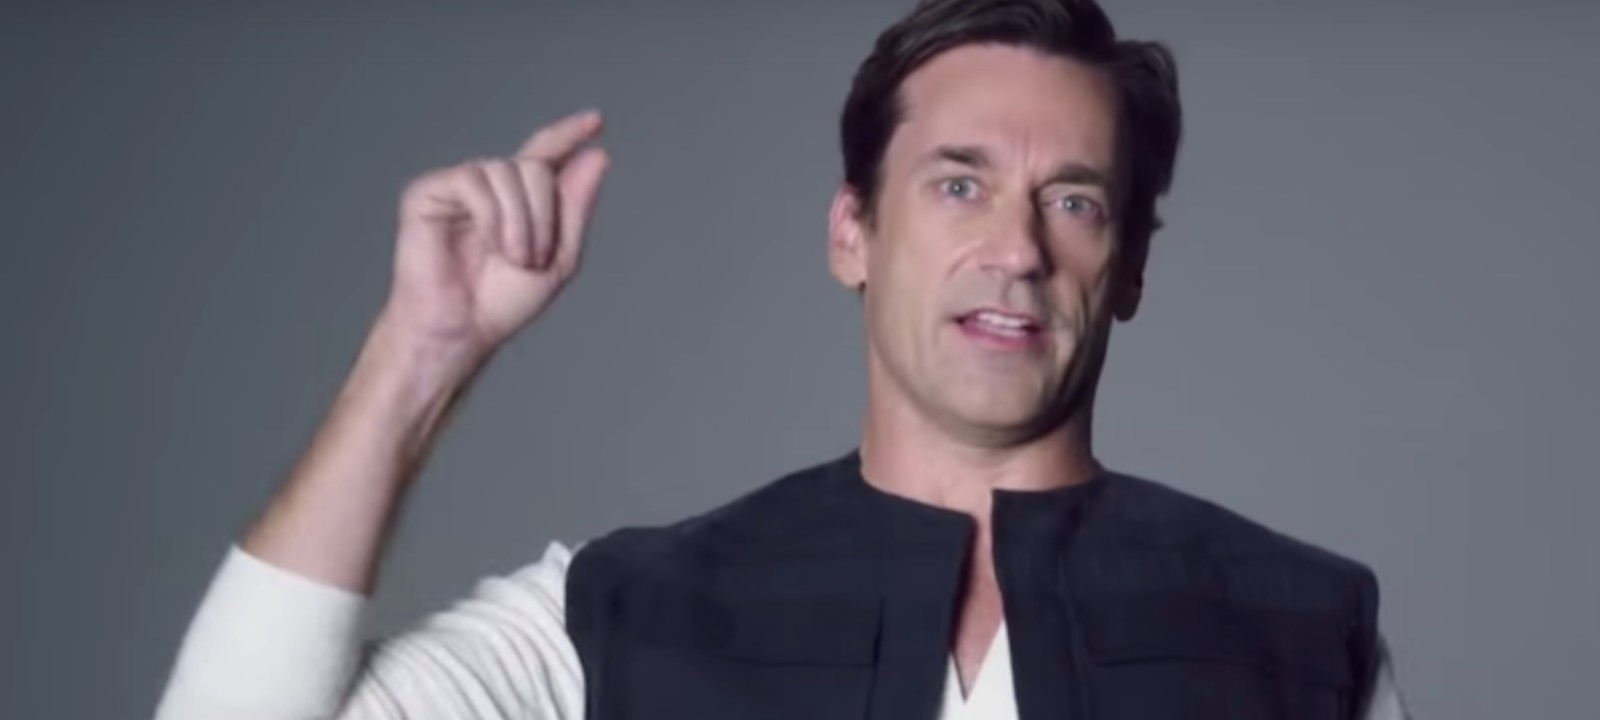 Jon Hamm as Han Solo in 'Star Wars' Audition Tapes from 'SNL'